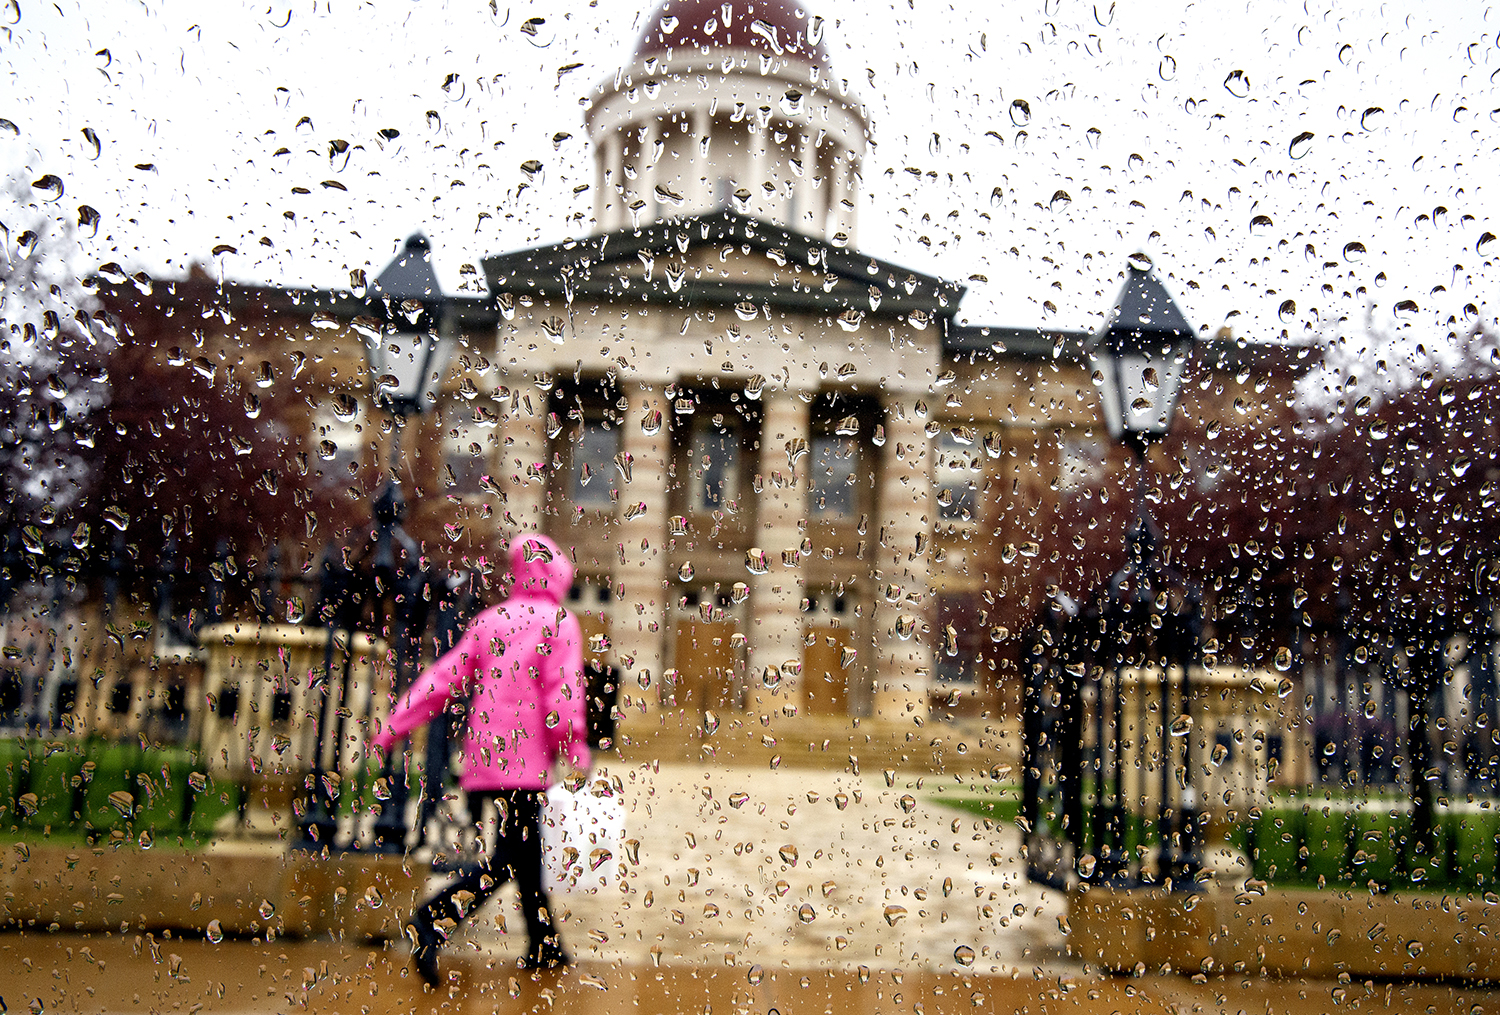 Raindrops on a window render an impressionistic view of the Old State Capitol  March 27. Rich Saal/The State Journal-Register